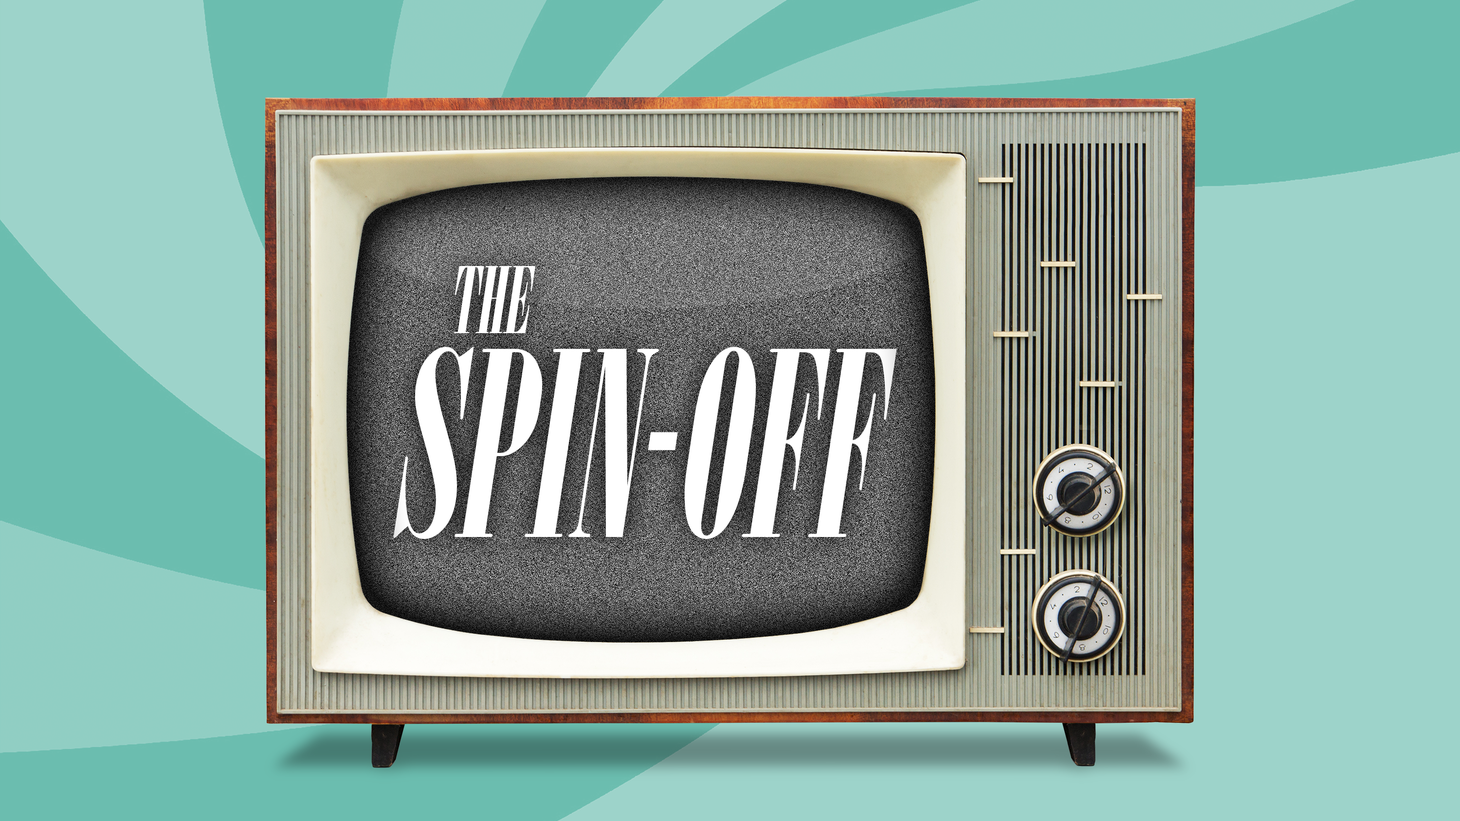 In our final episode of 2016, The Spin-off crew reflects on the year that was in television, and discusses the decision of ABC, NBC and CBS to skip out on the executive panels in the upcoming Television Critics Association press tour. They also talk about the recent ratings dip of AMC mega hit The Walking Dead. Plus, a holiday-themed Download segment.